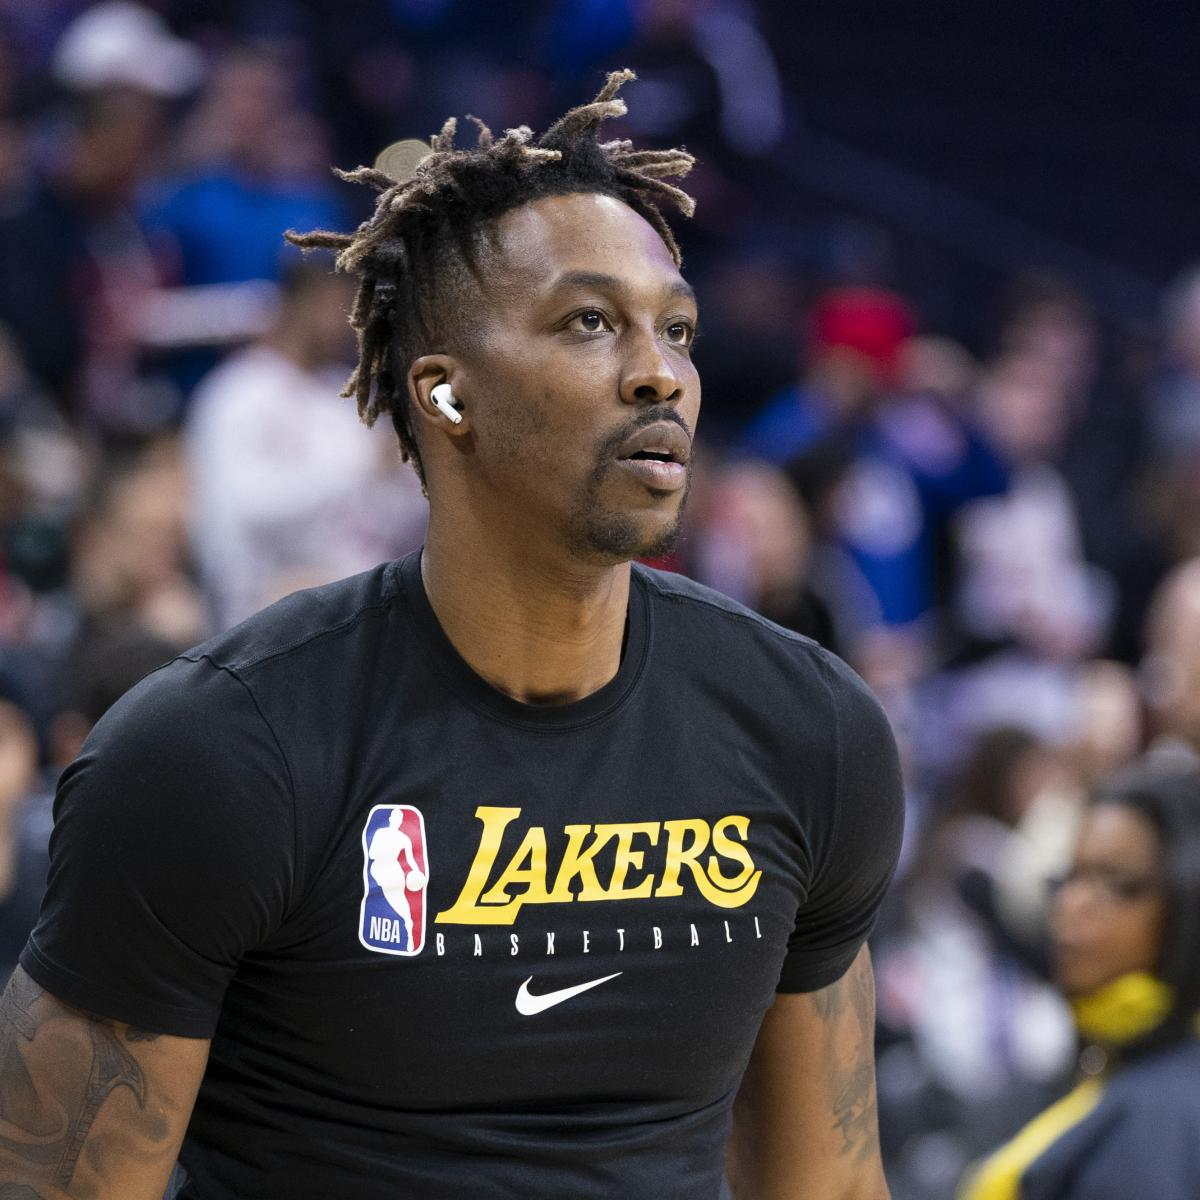 Lakers' Dwight Howard Credits Nick Van Exel for Improved Free-Throw Shooting